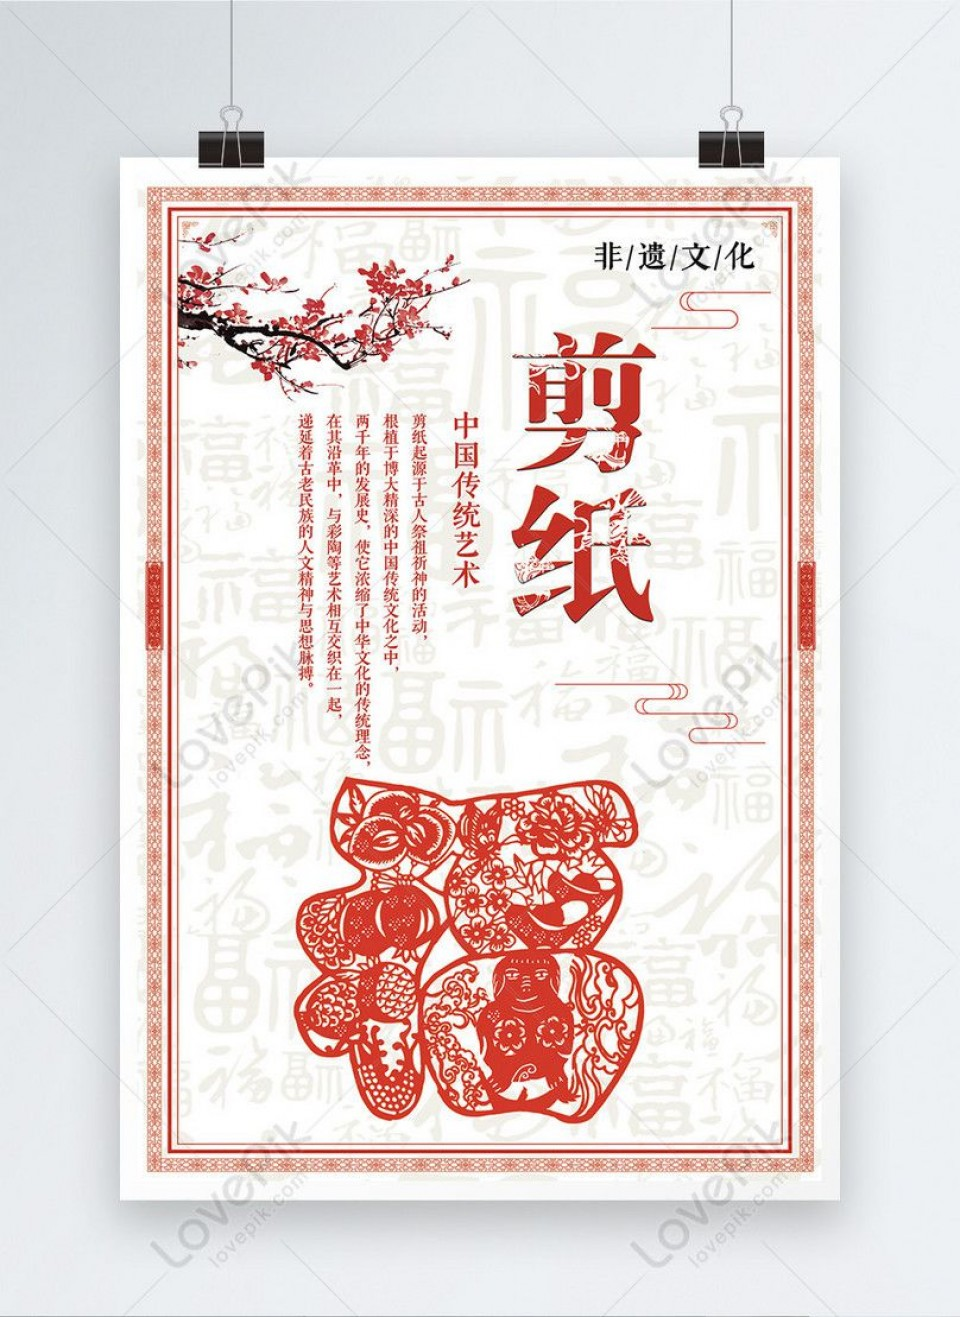 003 Fantastic Chinese Paper Cut Template Concept 960